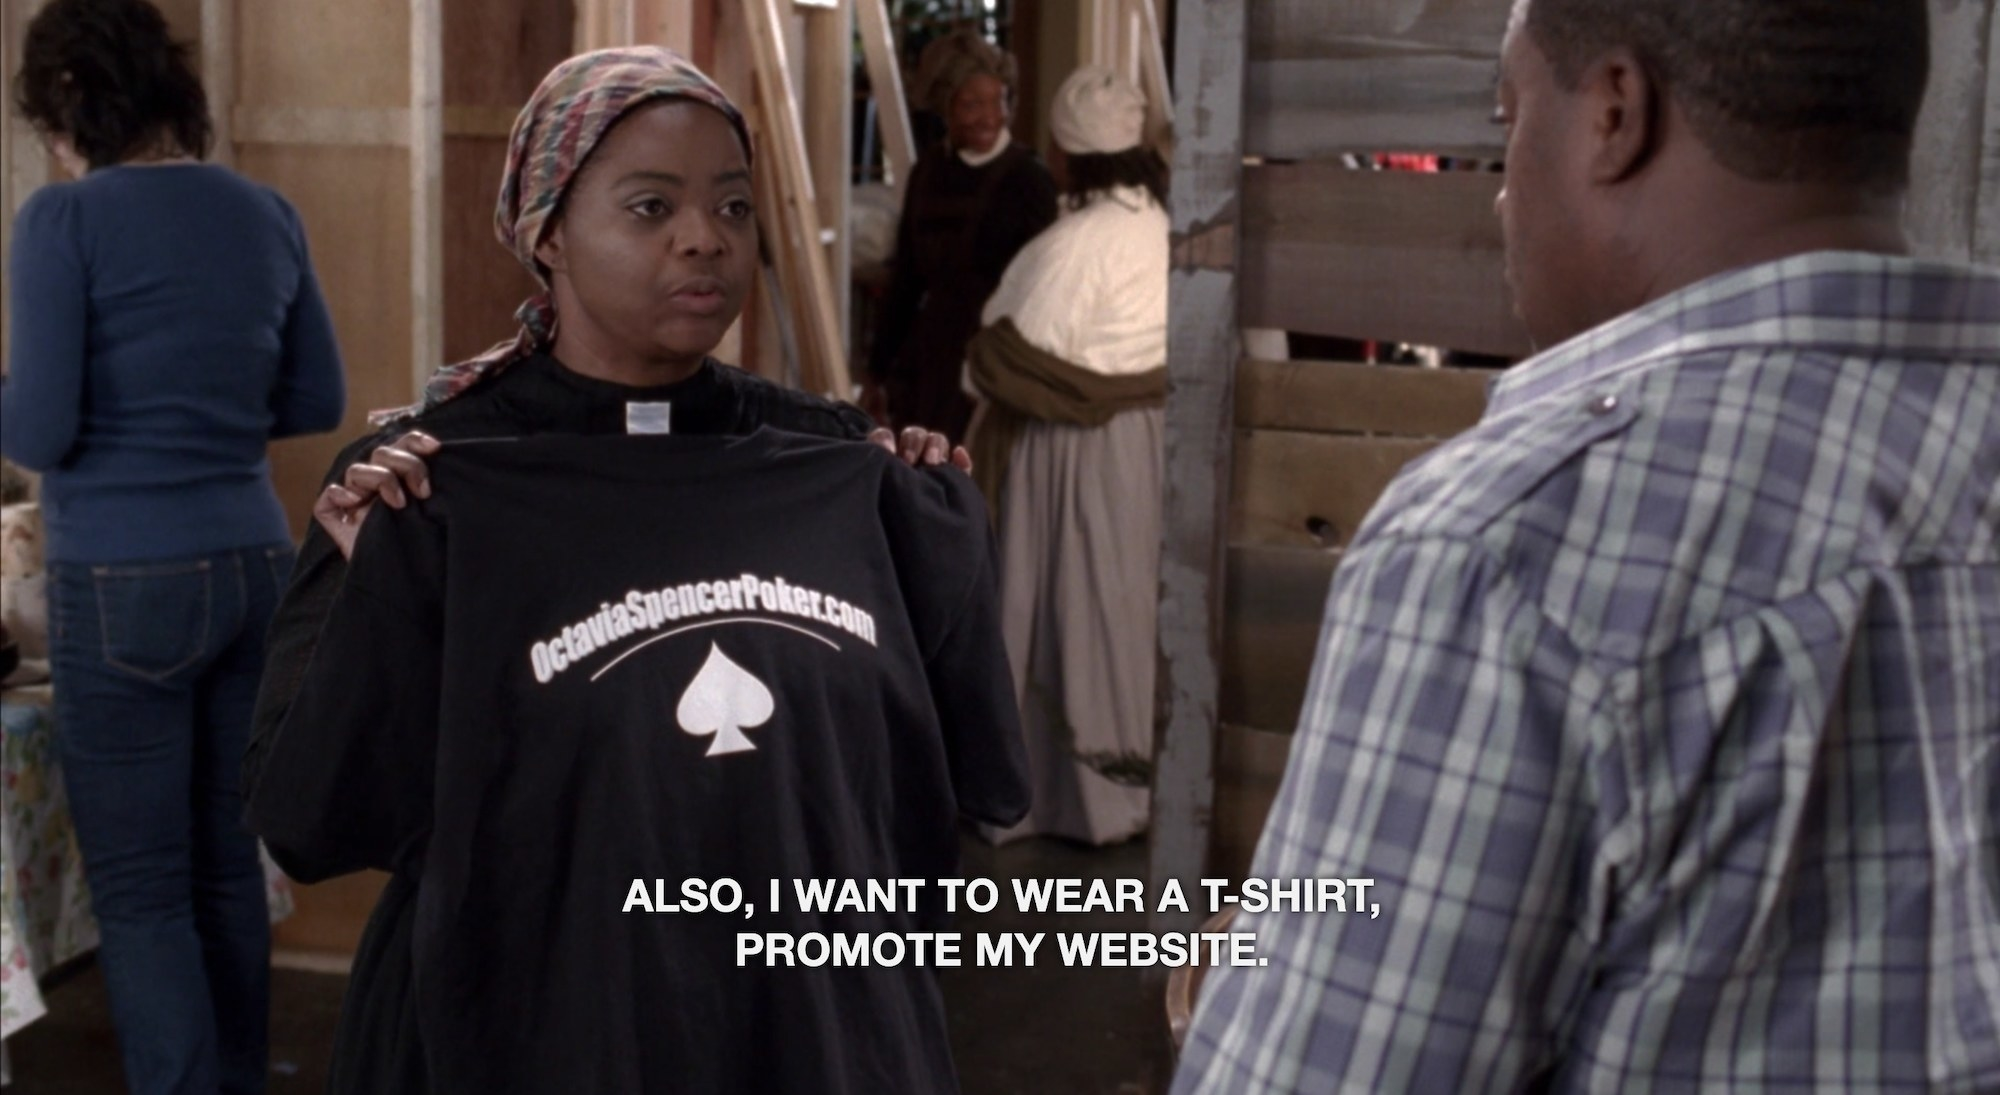 """A woman in old timey clothes holding up a T-shirt, with the caption text """"Also, I want to wear a t-shirt, promote my website"""""""